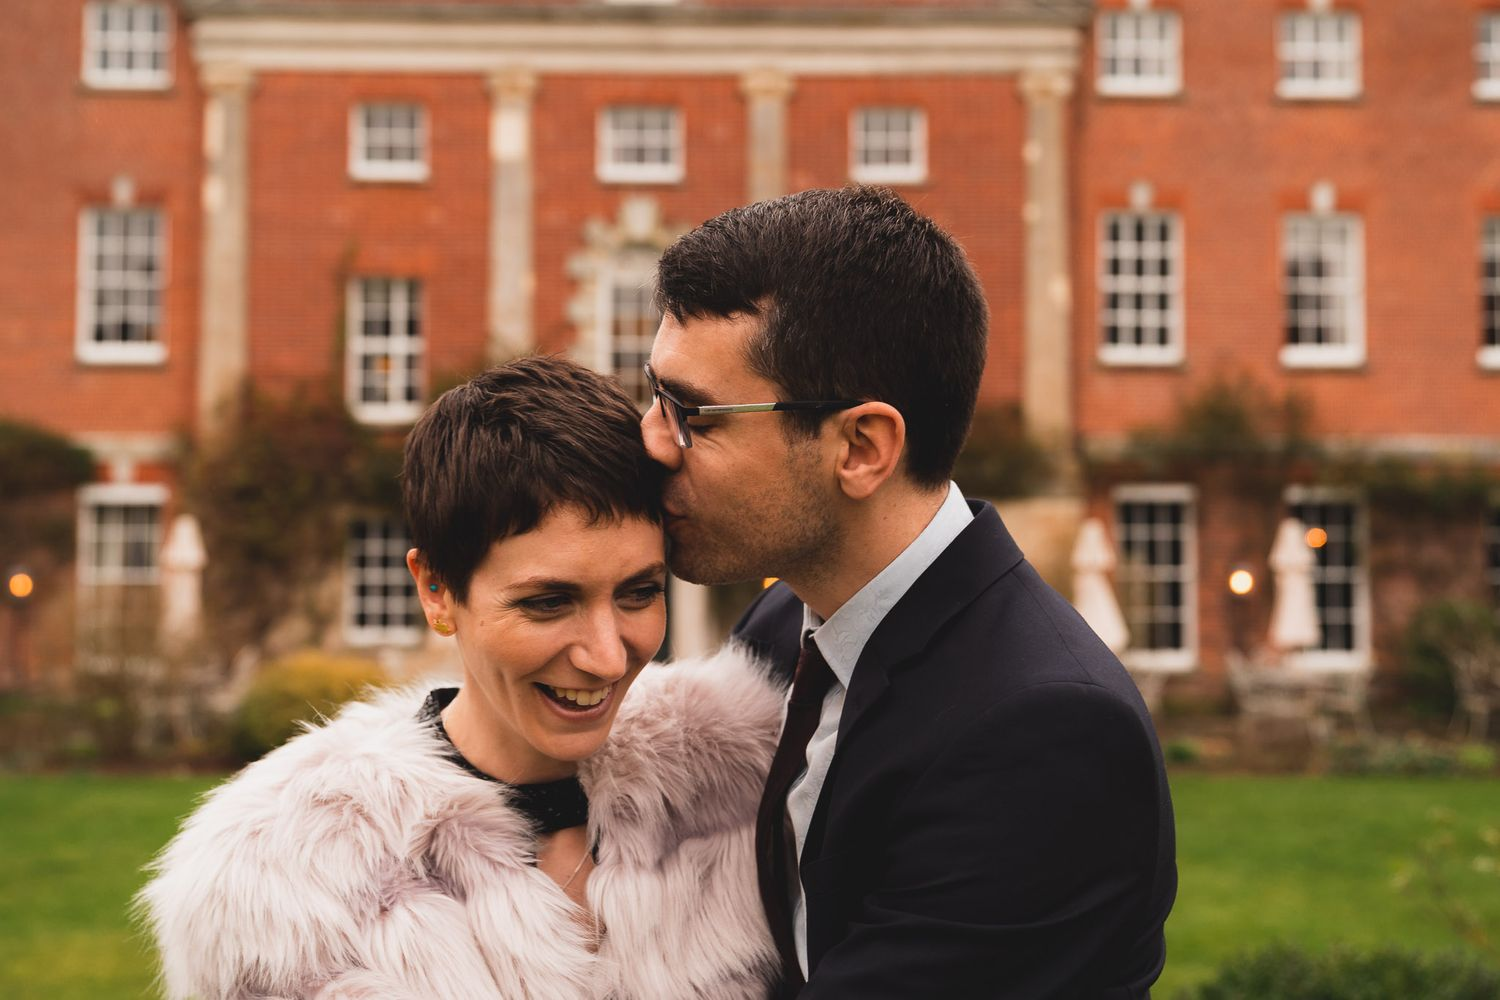 Groom kisses his new wife on the temple outside their wedding venue, 10 Castle Street in Dorset.